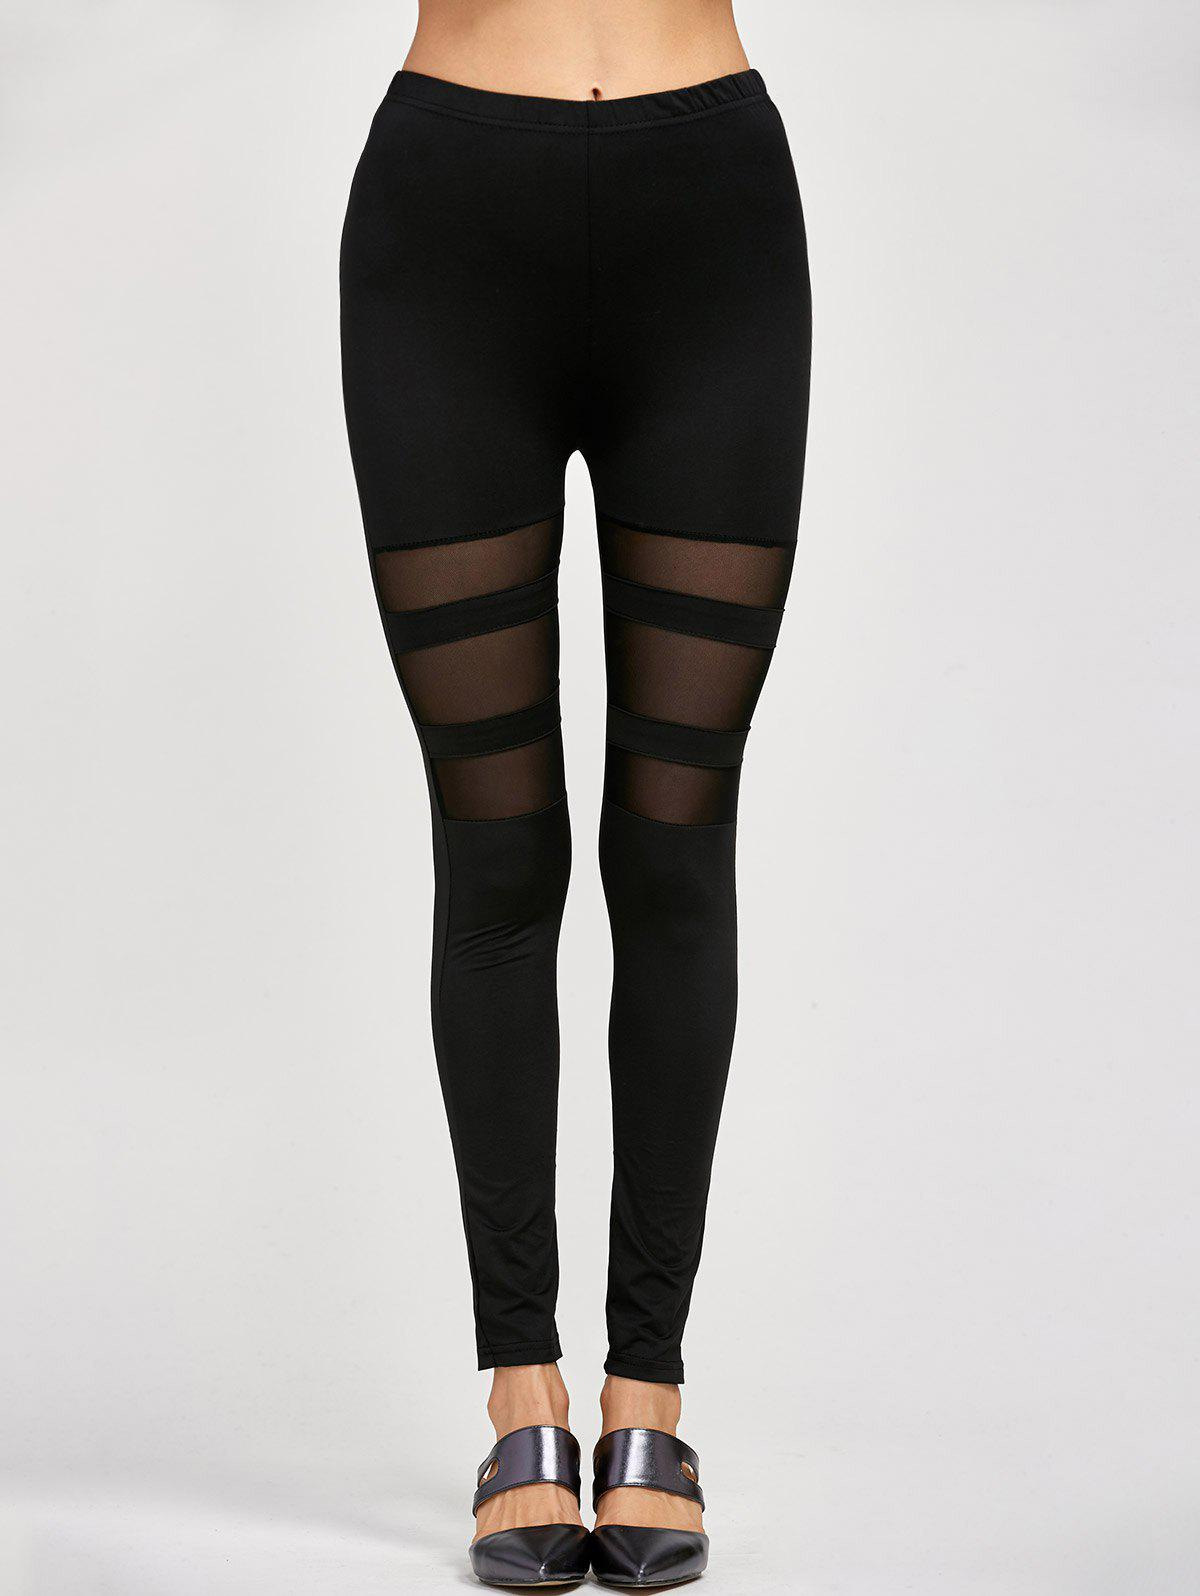 Mesh Insert Stretchy LeggingsWOMEN<br><br>Size: ONE SIZE; Color: BLACK; Style: Streetwear; Length: Ninth; Material: Cotton,Polyester; Fit Type: Skinny; Waist Type: High; Closure Type: Elastic Waist; Pattern Type: Patchwork; Pant Style: Pencil Pants; Weight: 0.125kg; Package Contents: 1 x Leggings;